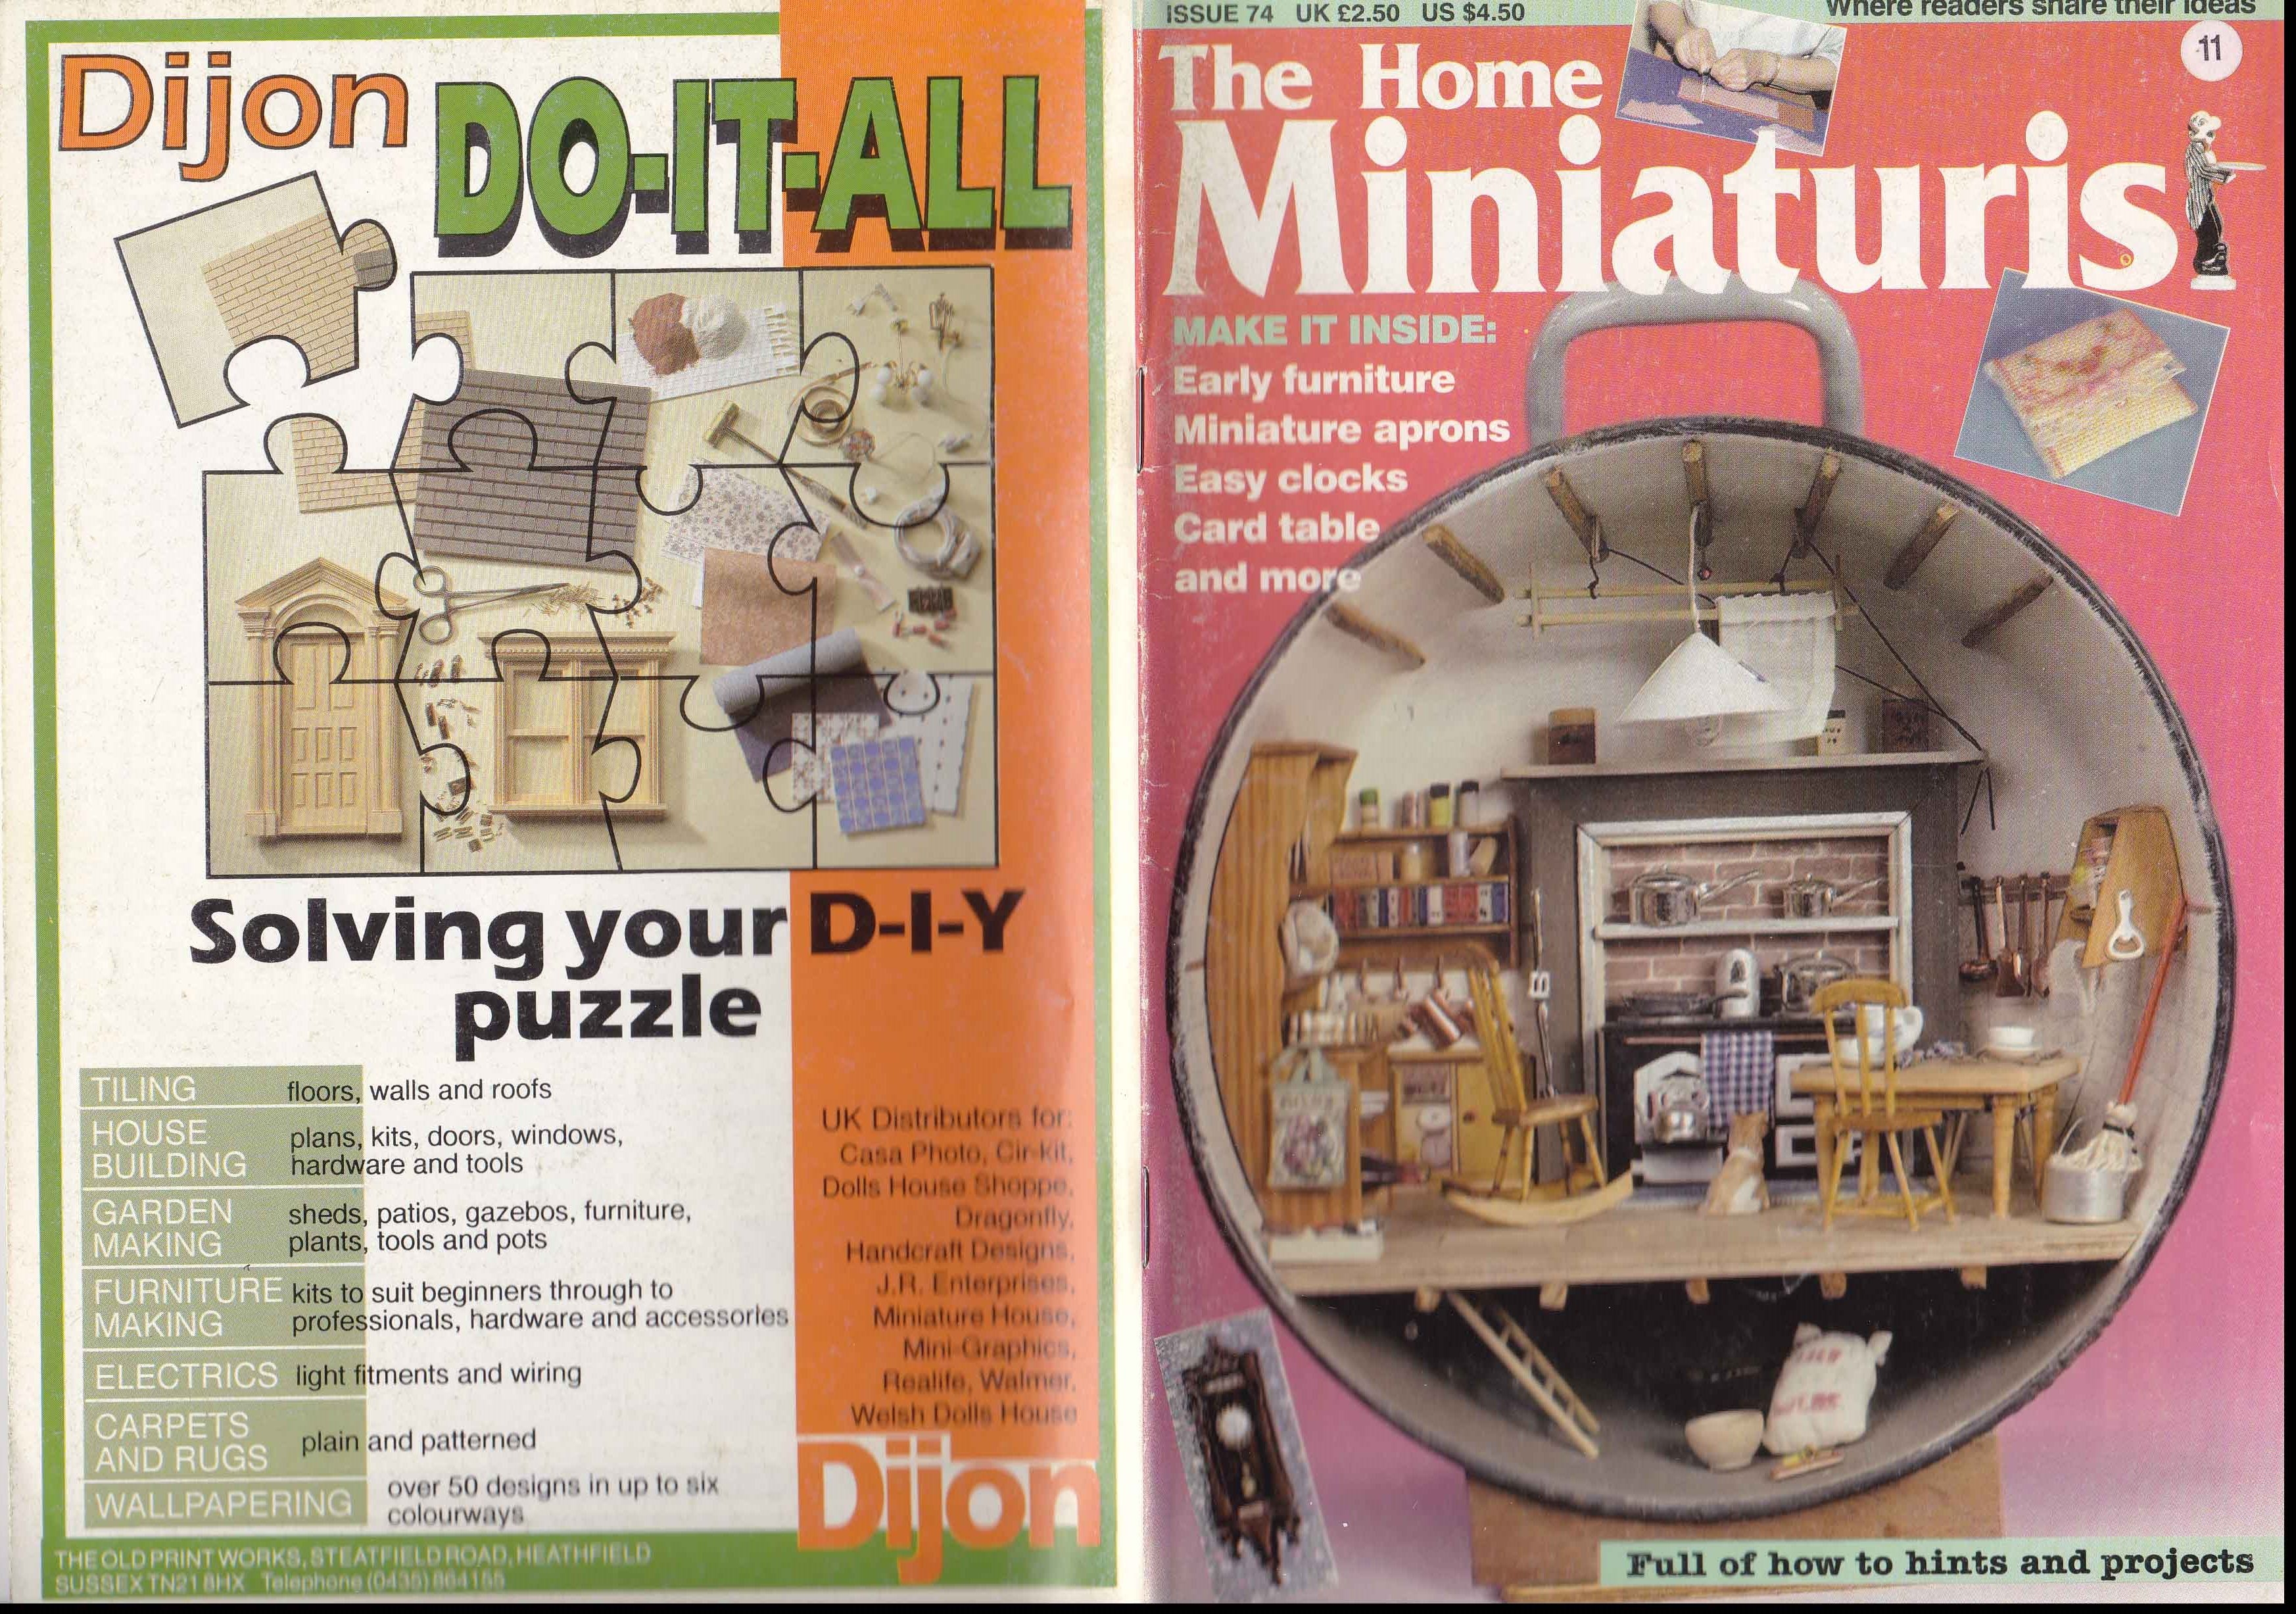 Pin By Denise Ferrari On Dollhouse Mini Printable Pinterest Building Wiring Books Bookcase Diy Miniatures House And Home Magazine Book